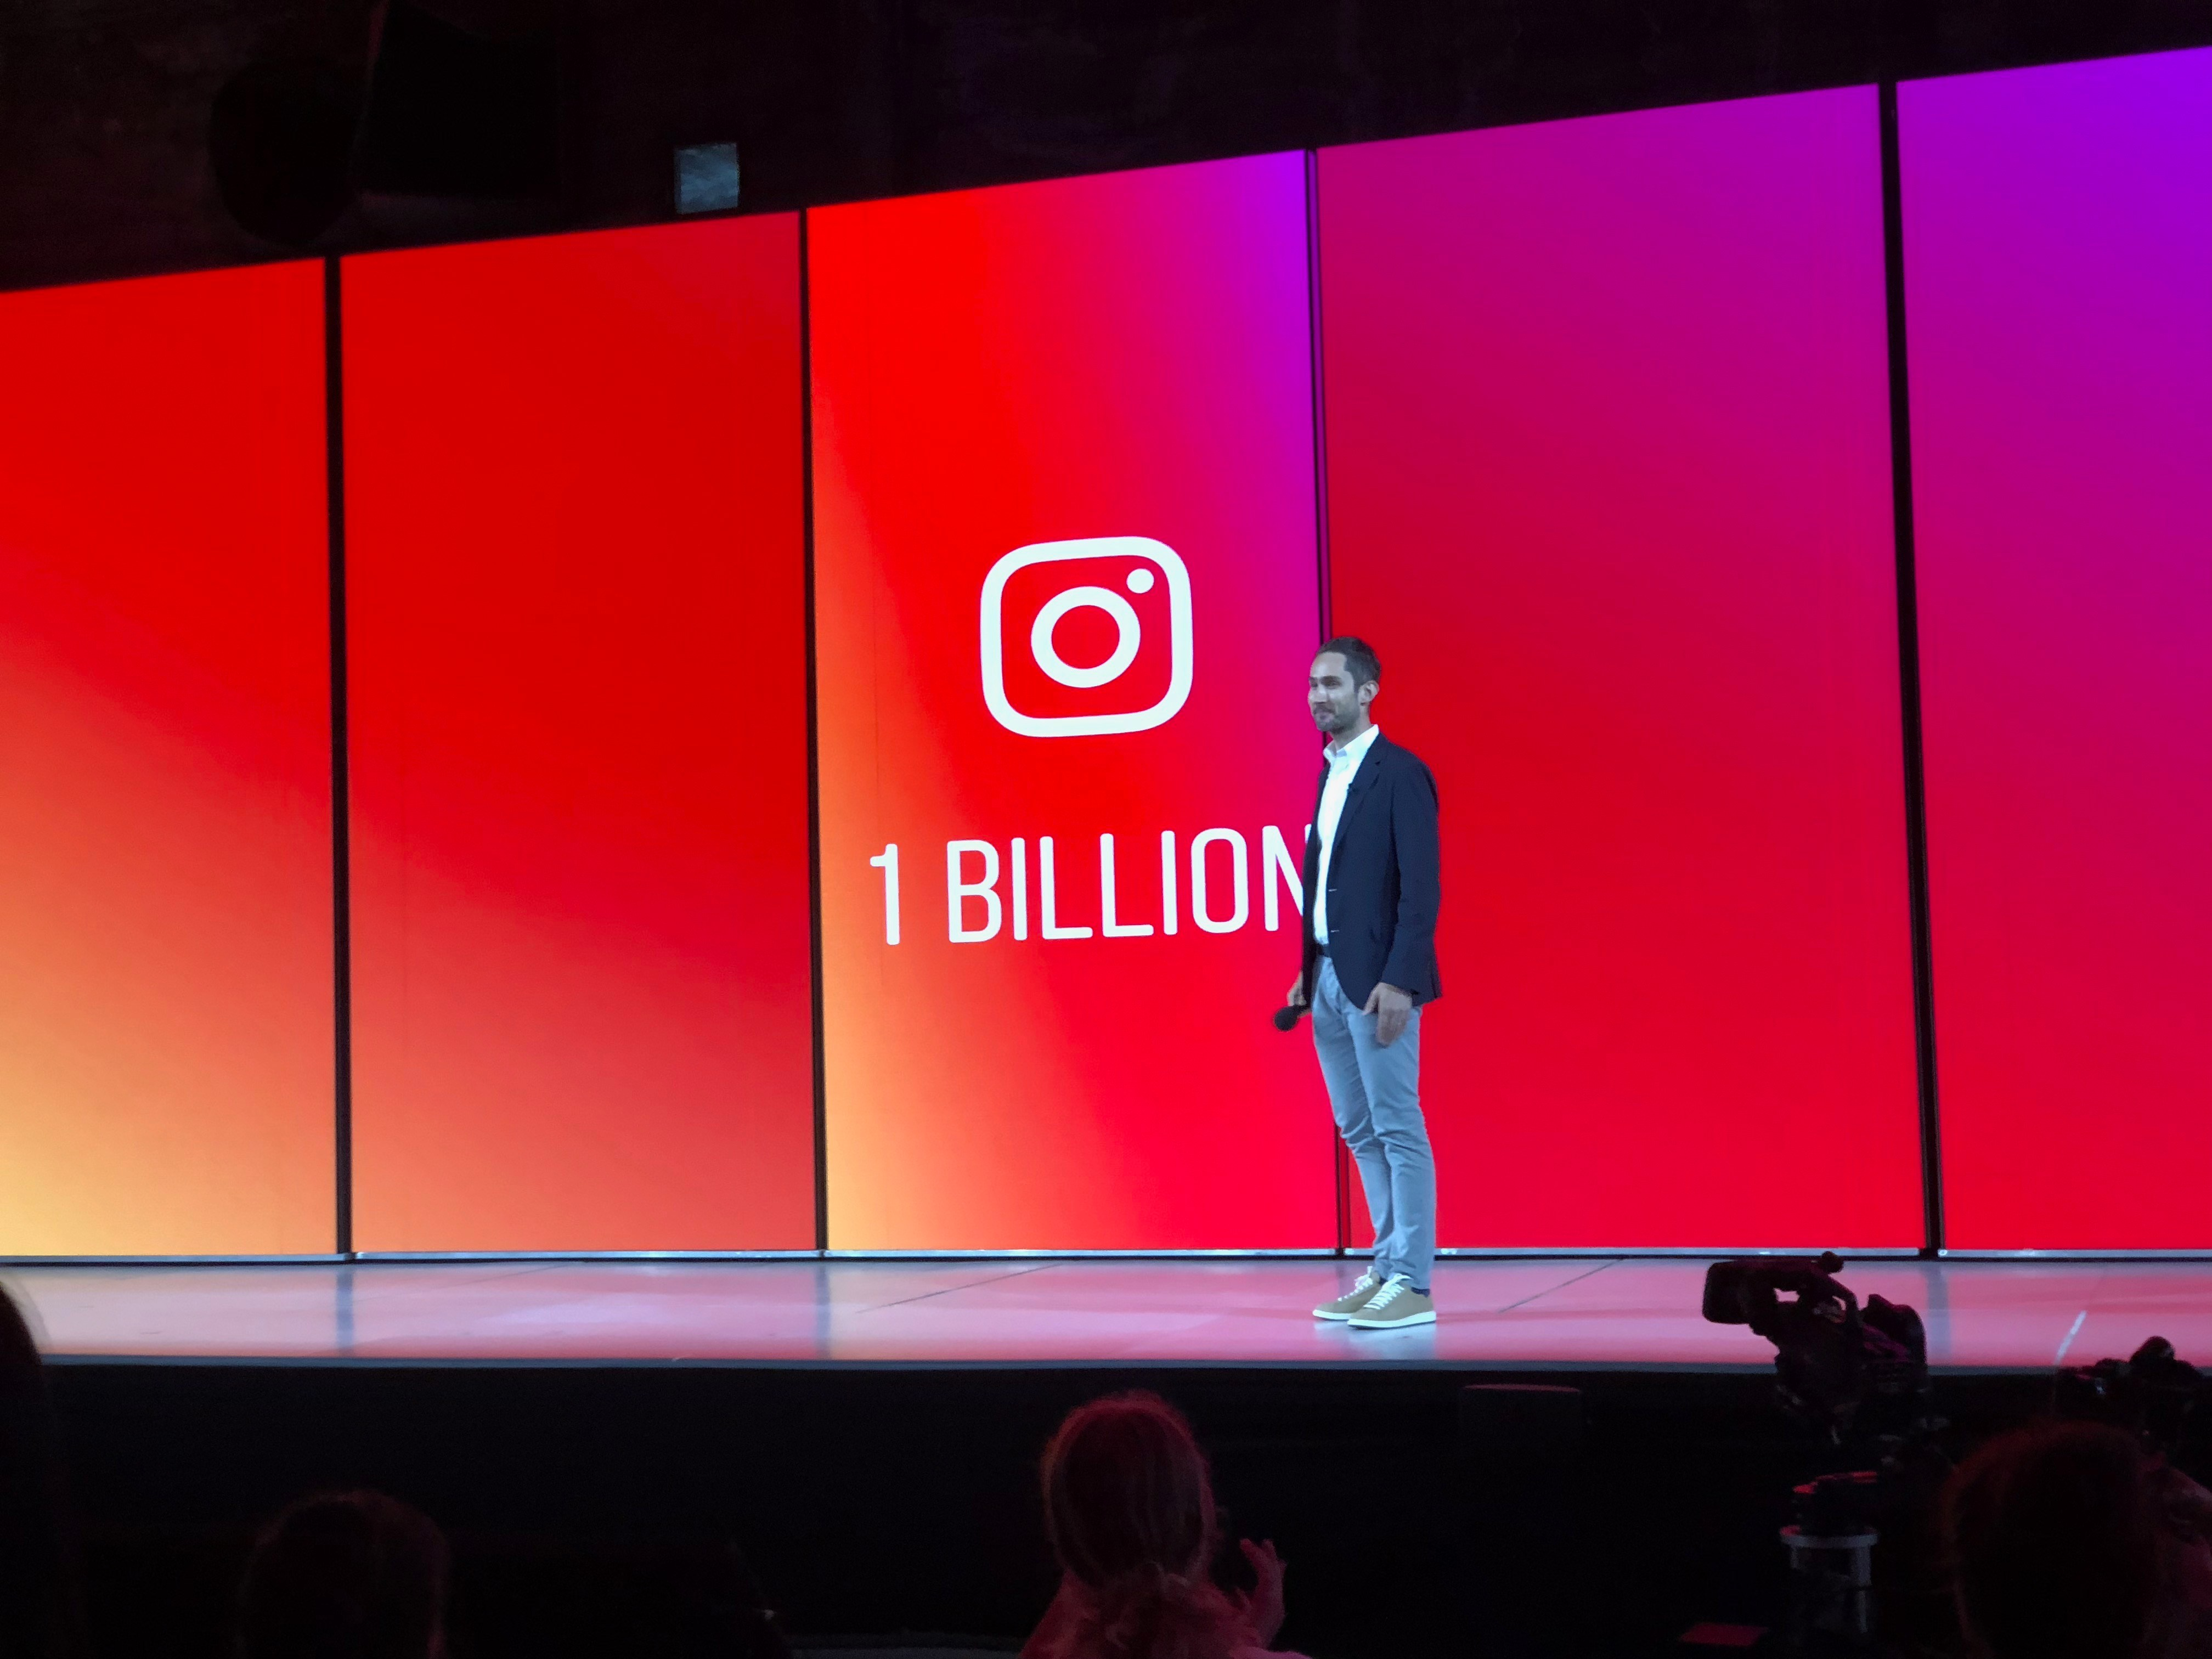 Instagram now has its own version of YouTube - The